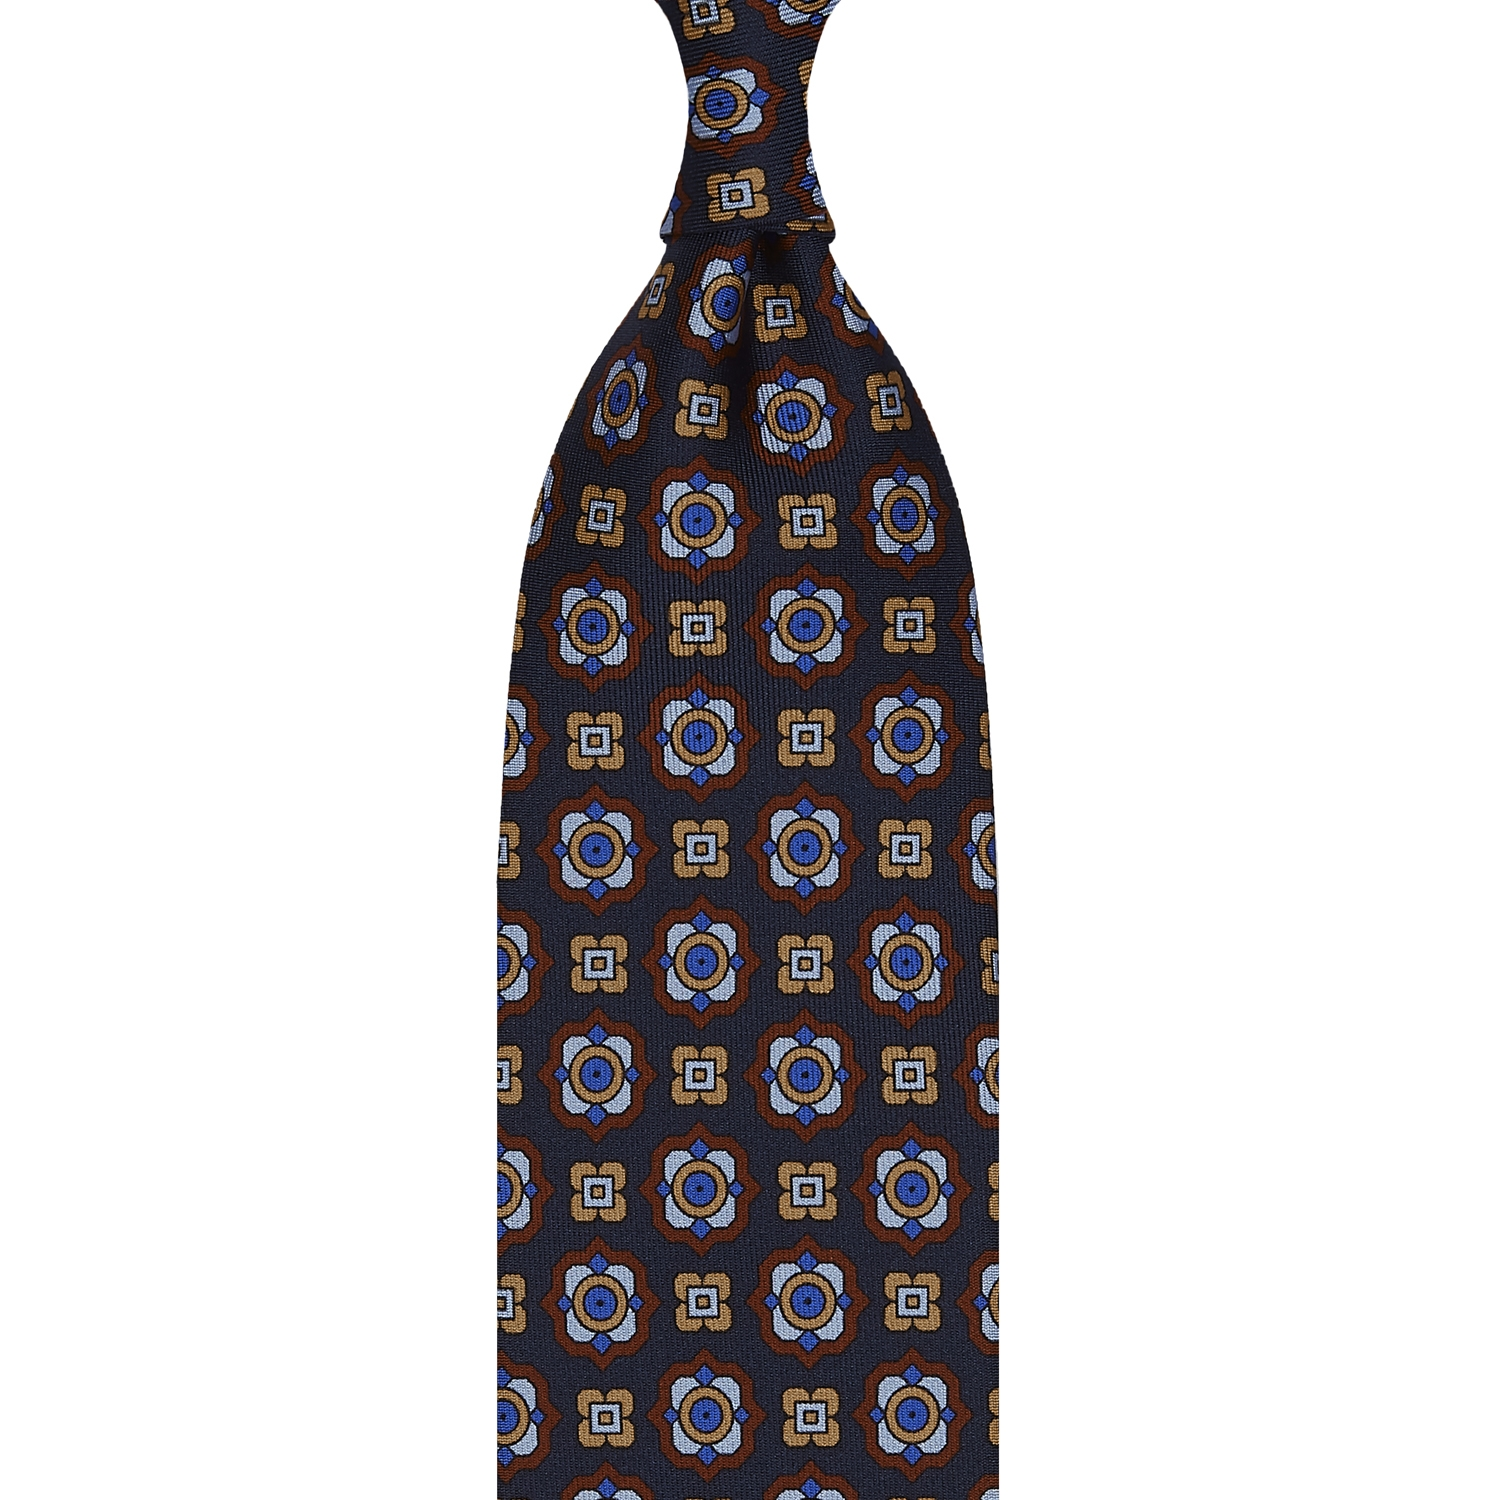 FLORAL PATTERN TWILL SILK TIE – NAVY